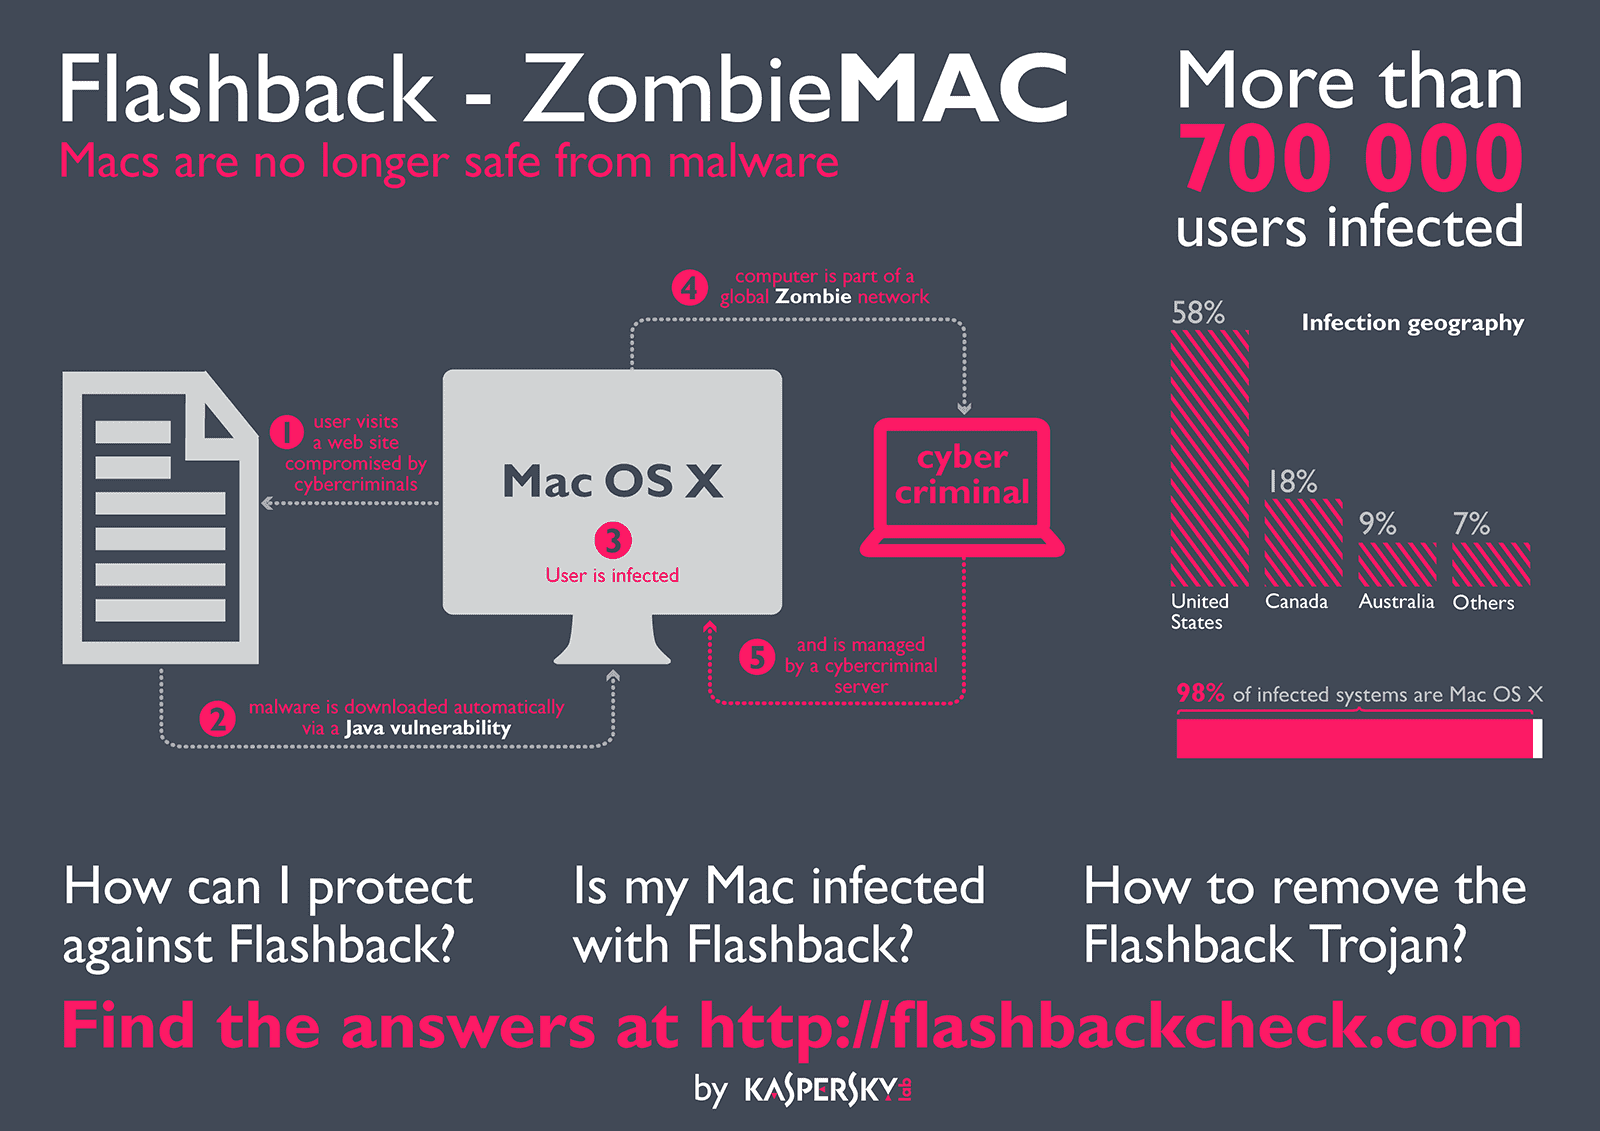 content/sv-se/images/repository/isc/infographics-zombie-mac.png